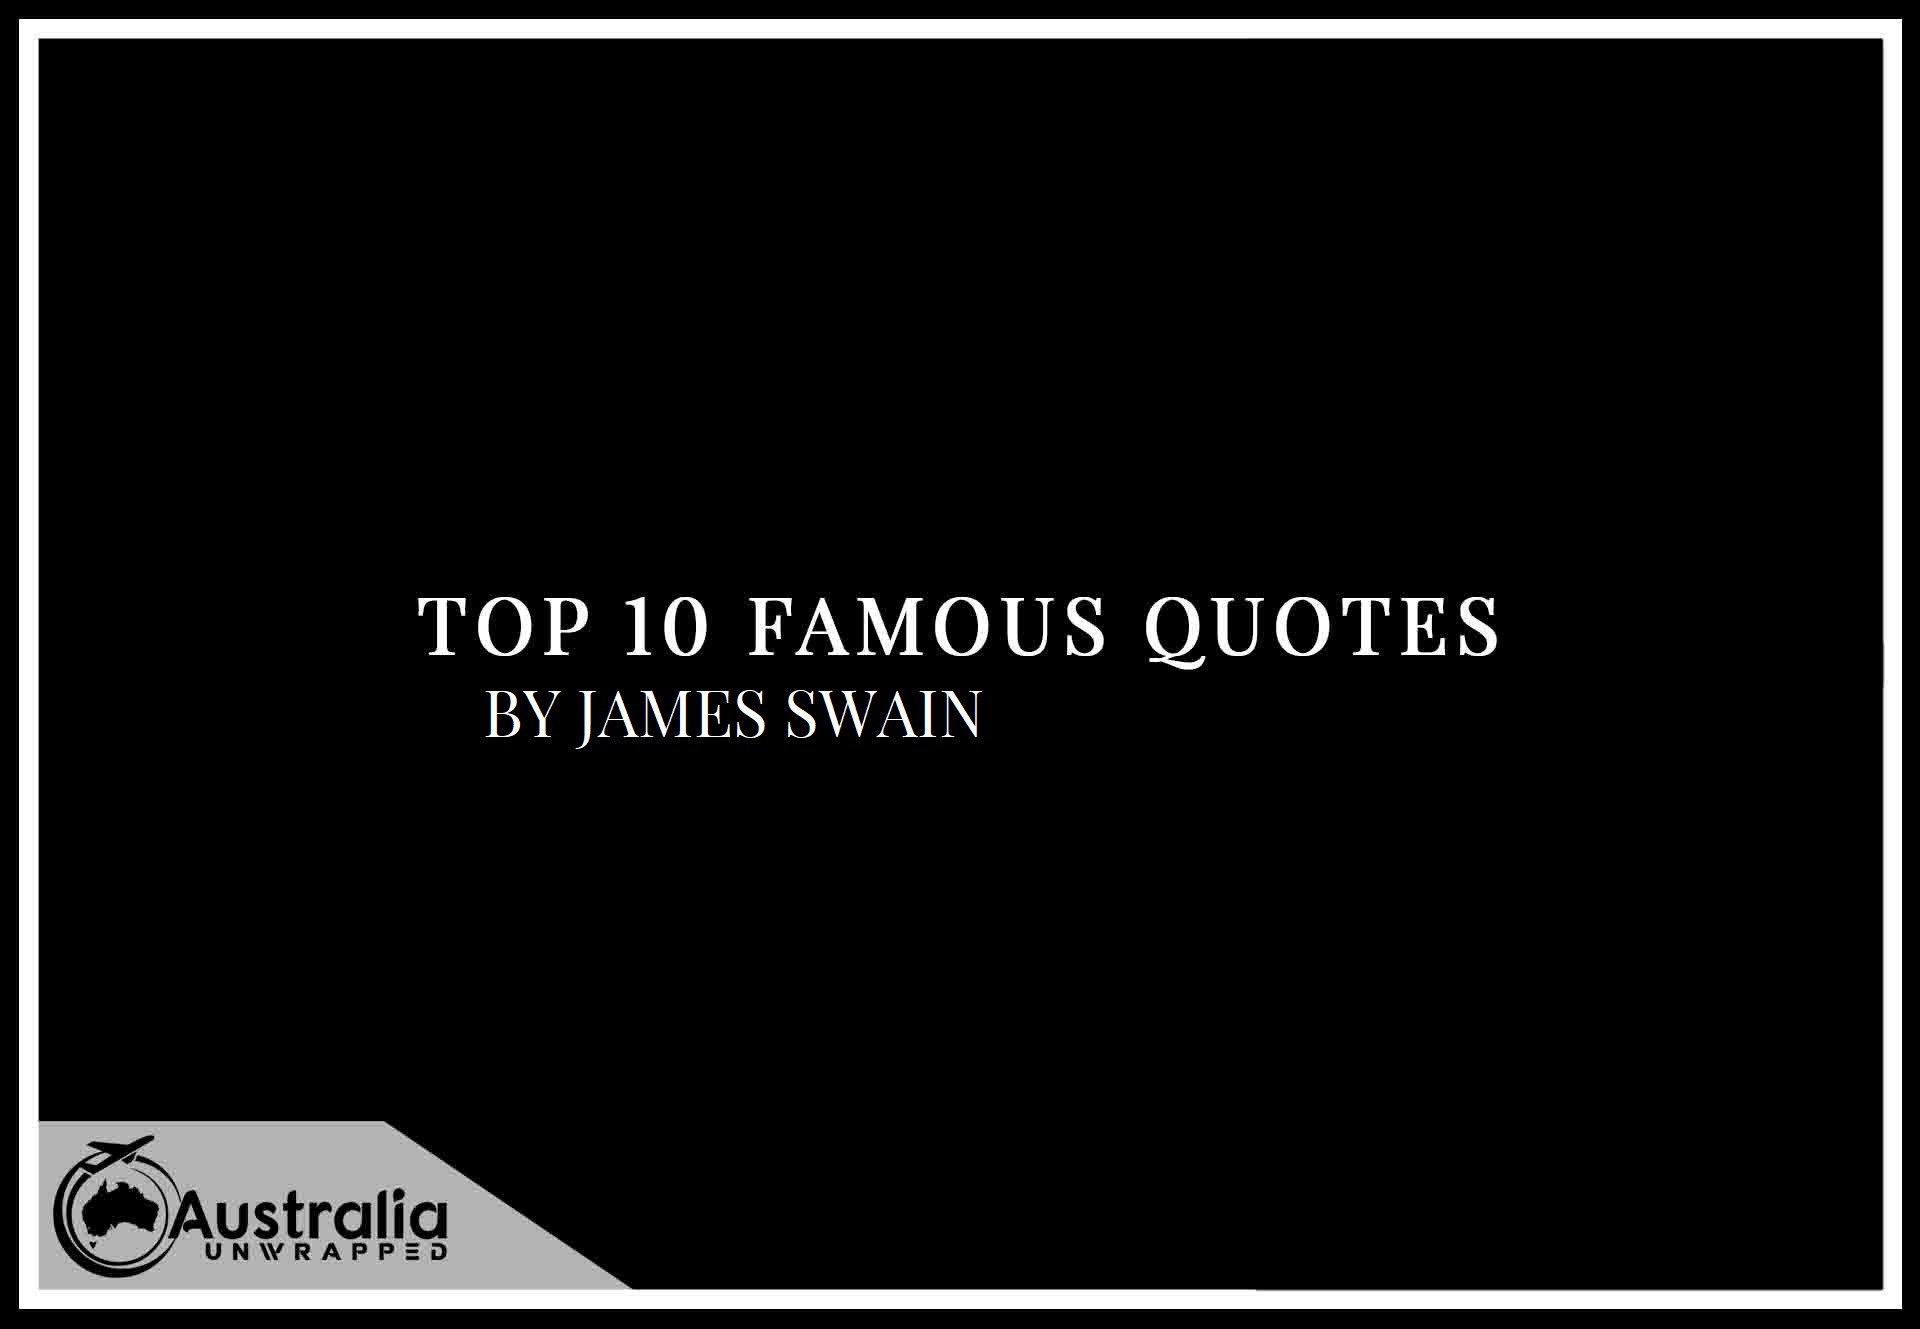 Top 10 Famous Quotes by Author James Swain